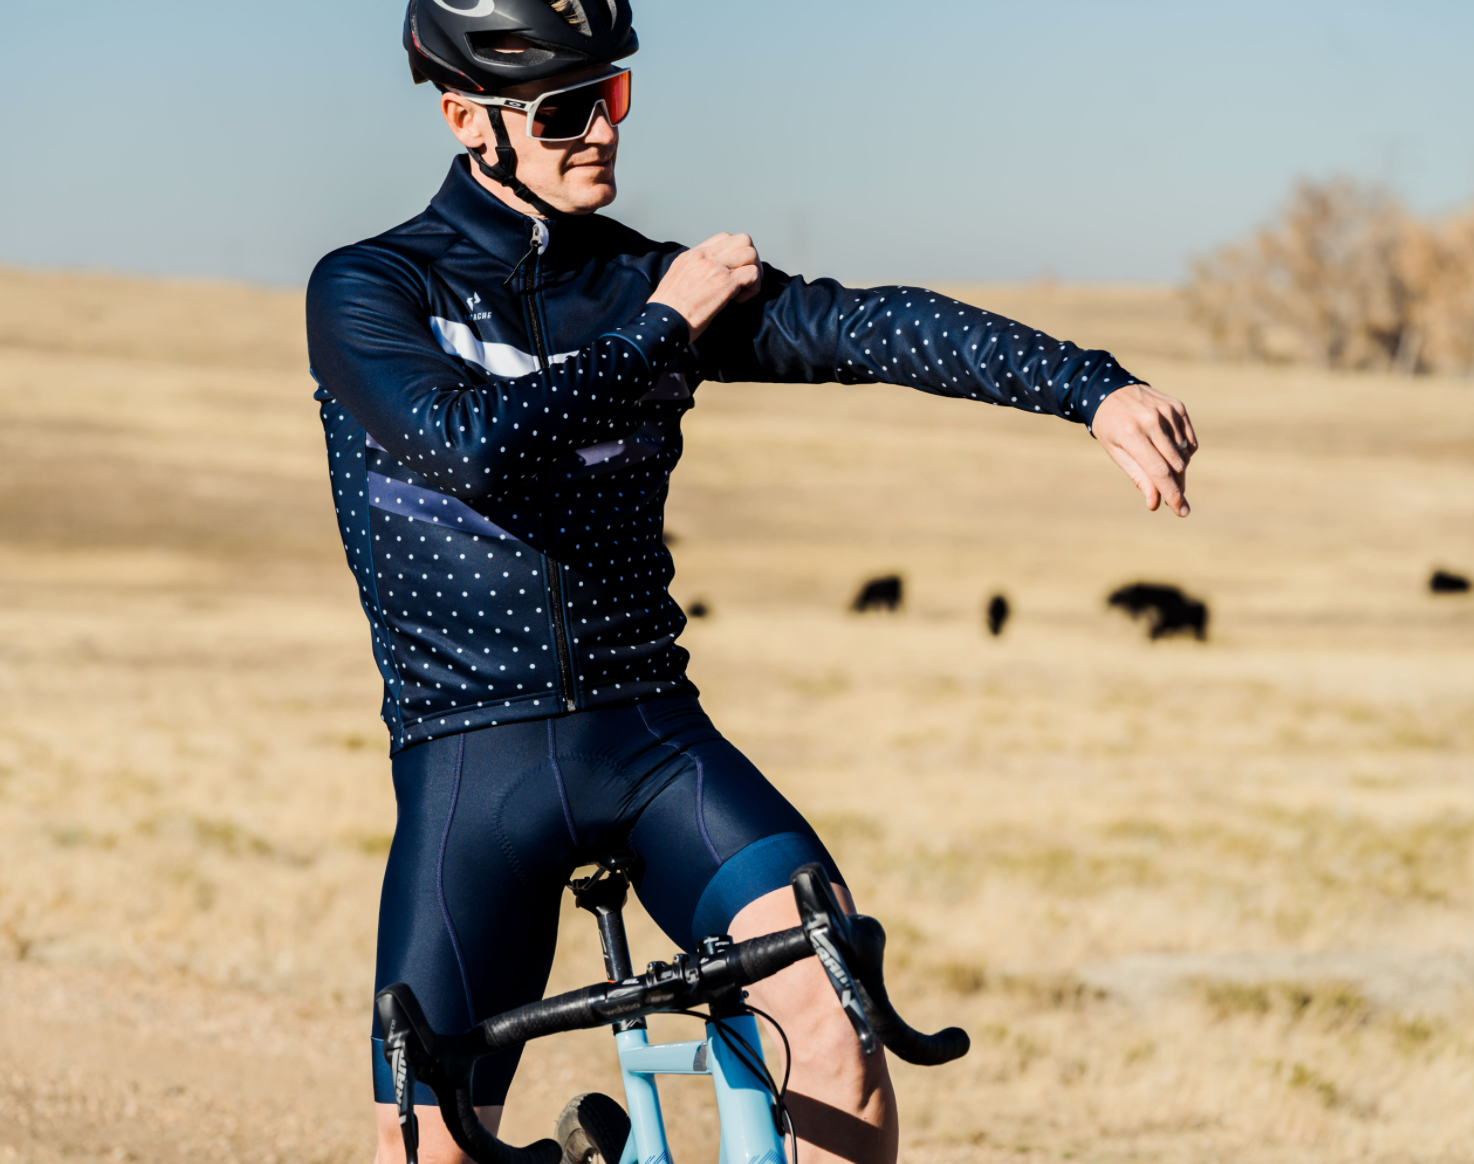 M's and W's Pro Thermal Jacket - Midnight Blue Polka